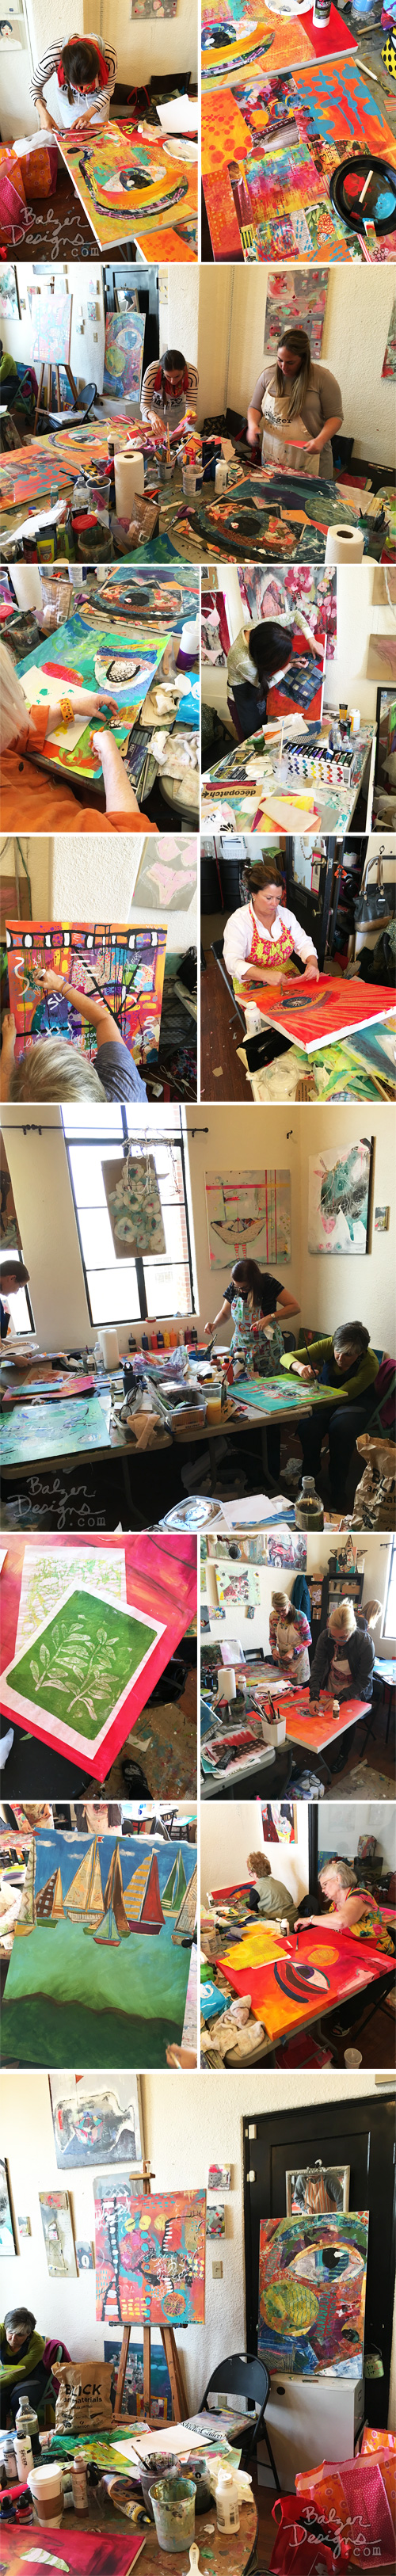 from the Balzer Designs Blog: Big Collage at Studio Crescendoh